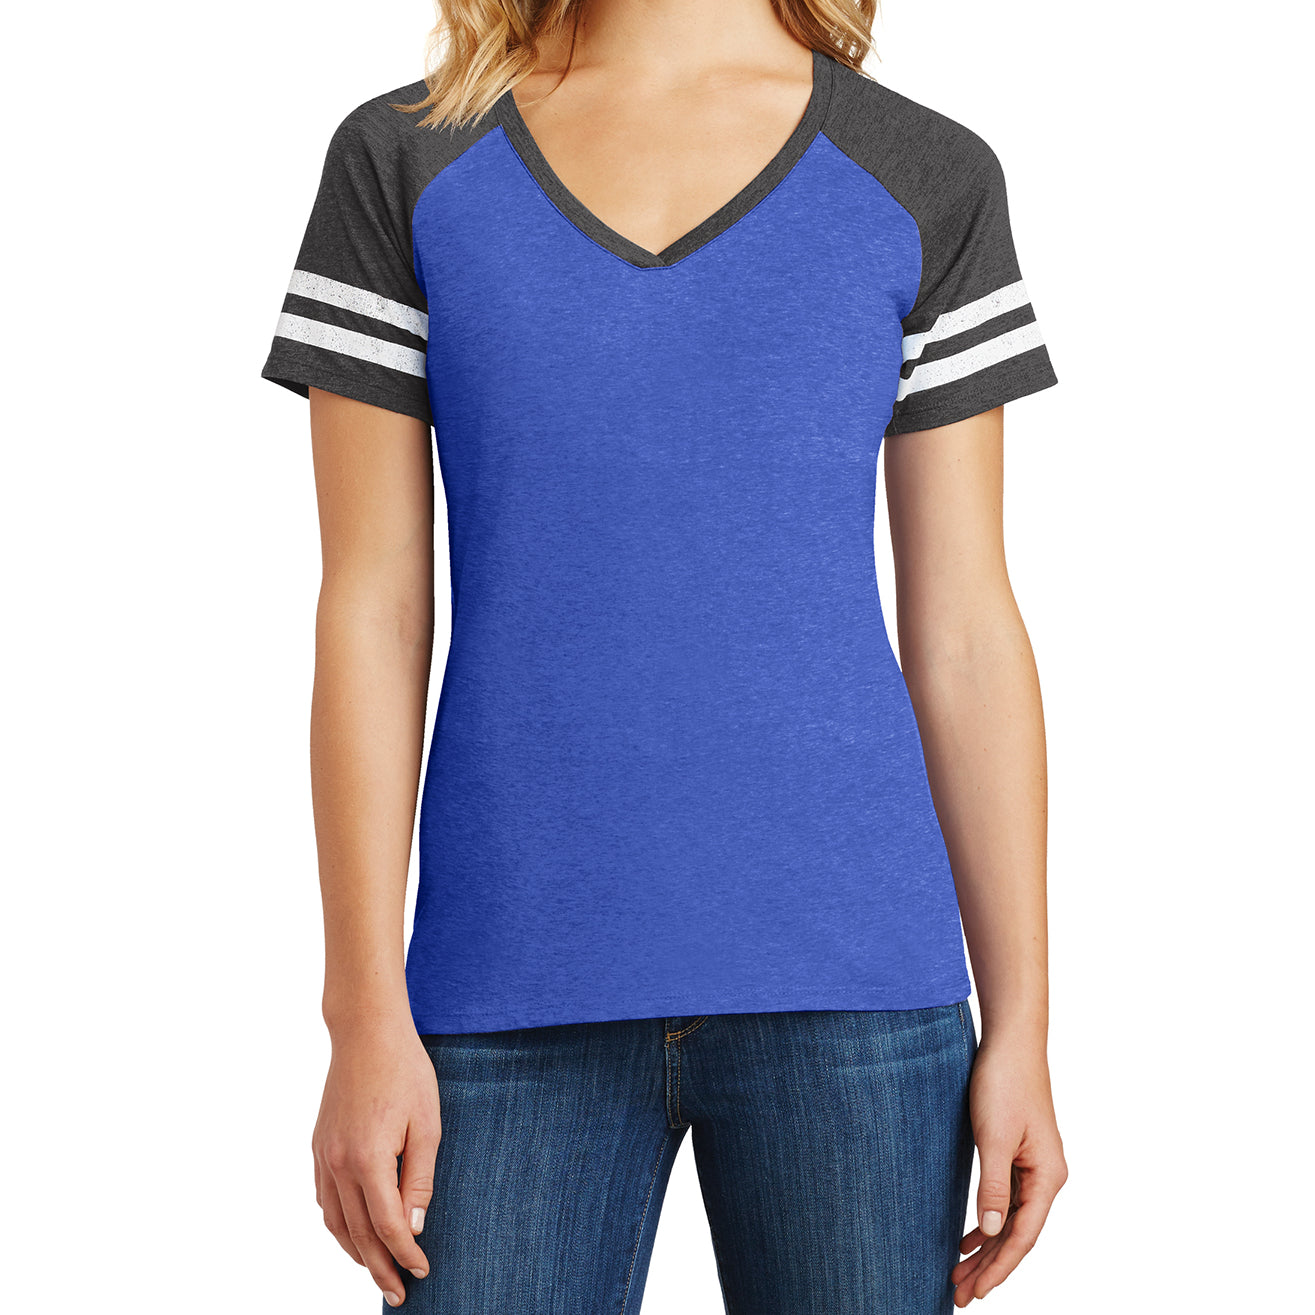 Womens Game V-Neck Tee - Heathered True Royal/Heathered Charcoal - Front